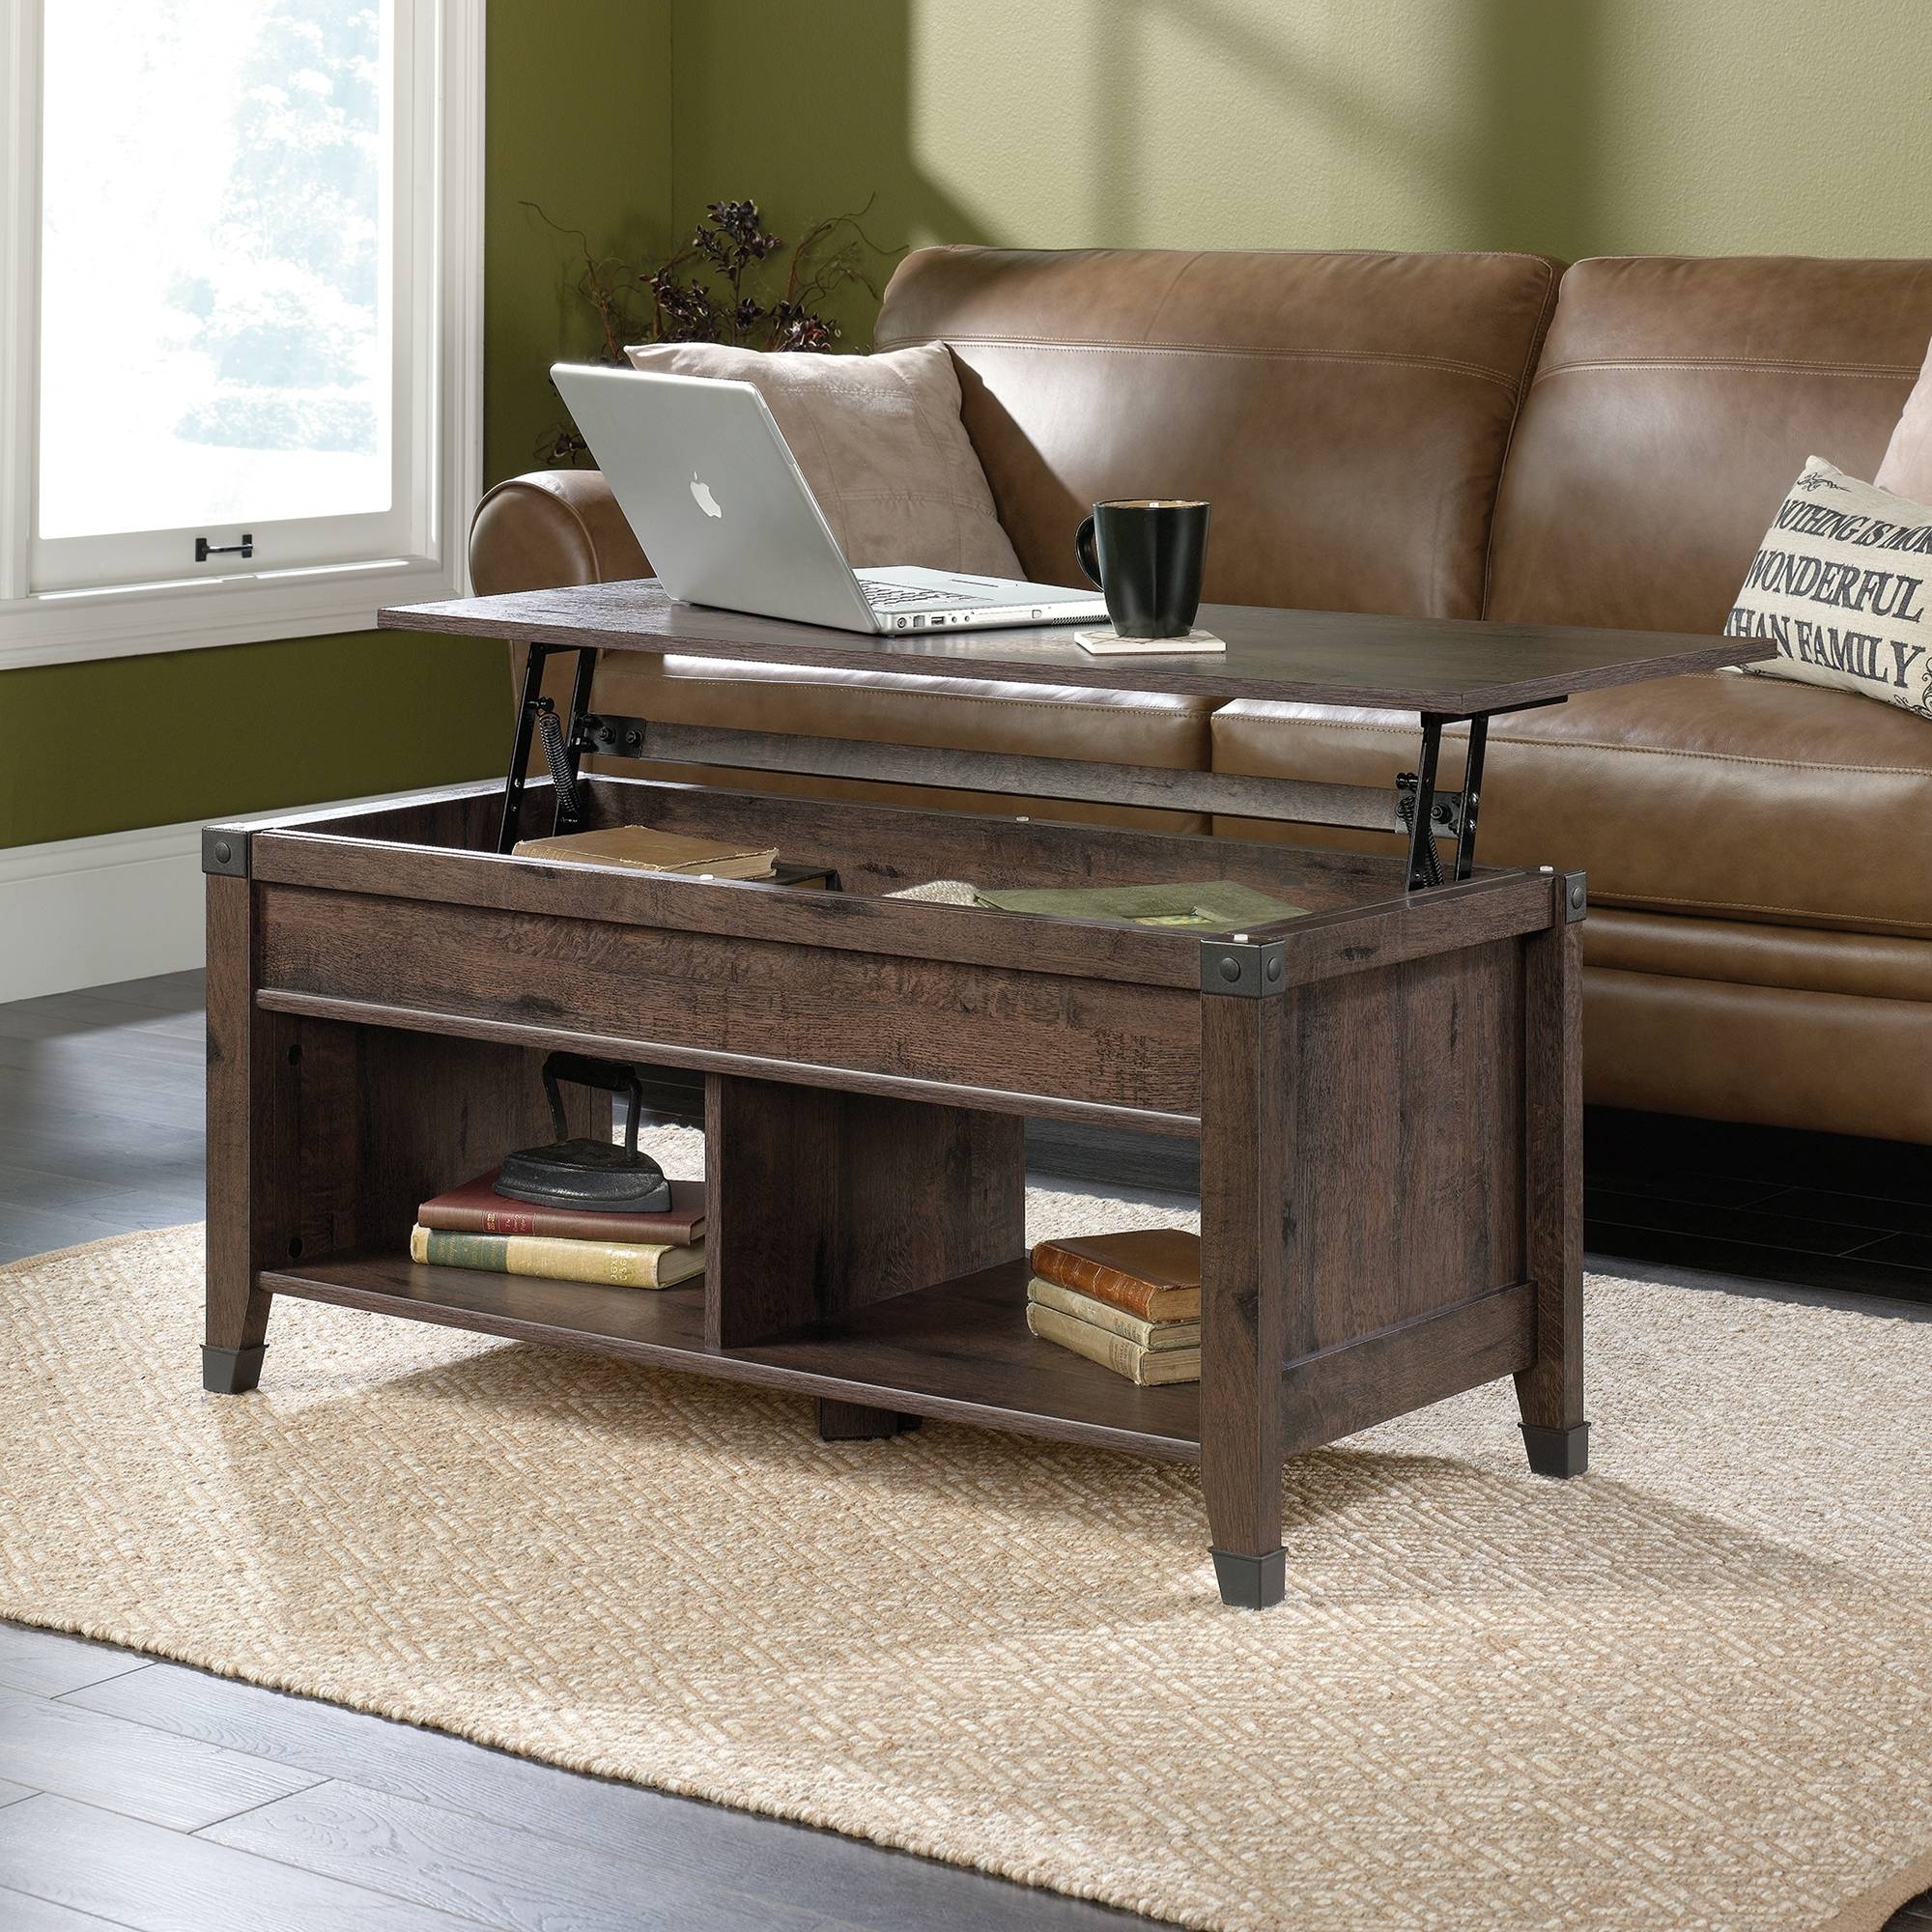 Carson Forge | Lift Top Coffee Table | 420421 | Sauder Within Opens Up Coffee Tables (View 7 of 30)